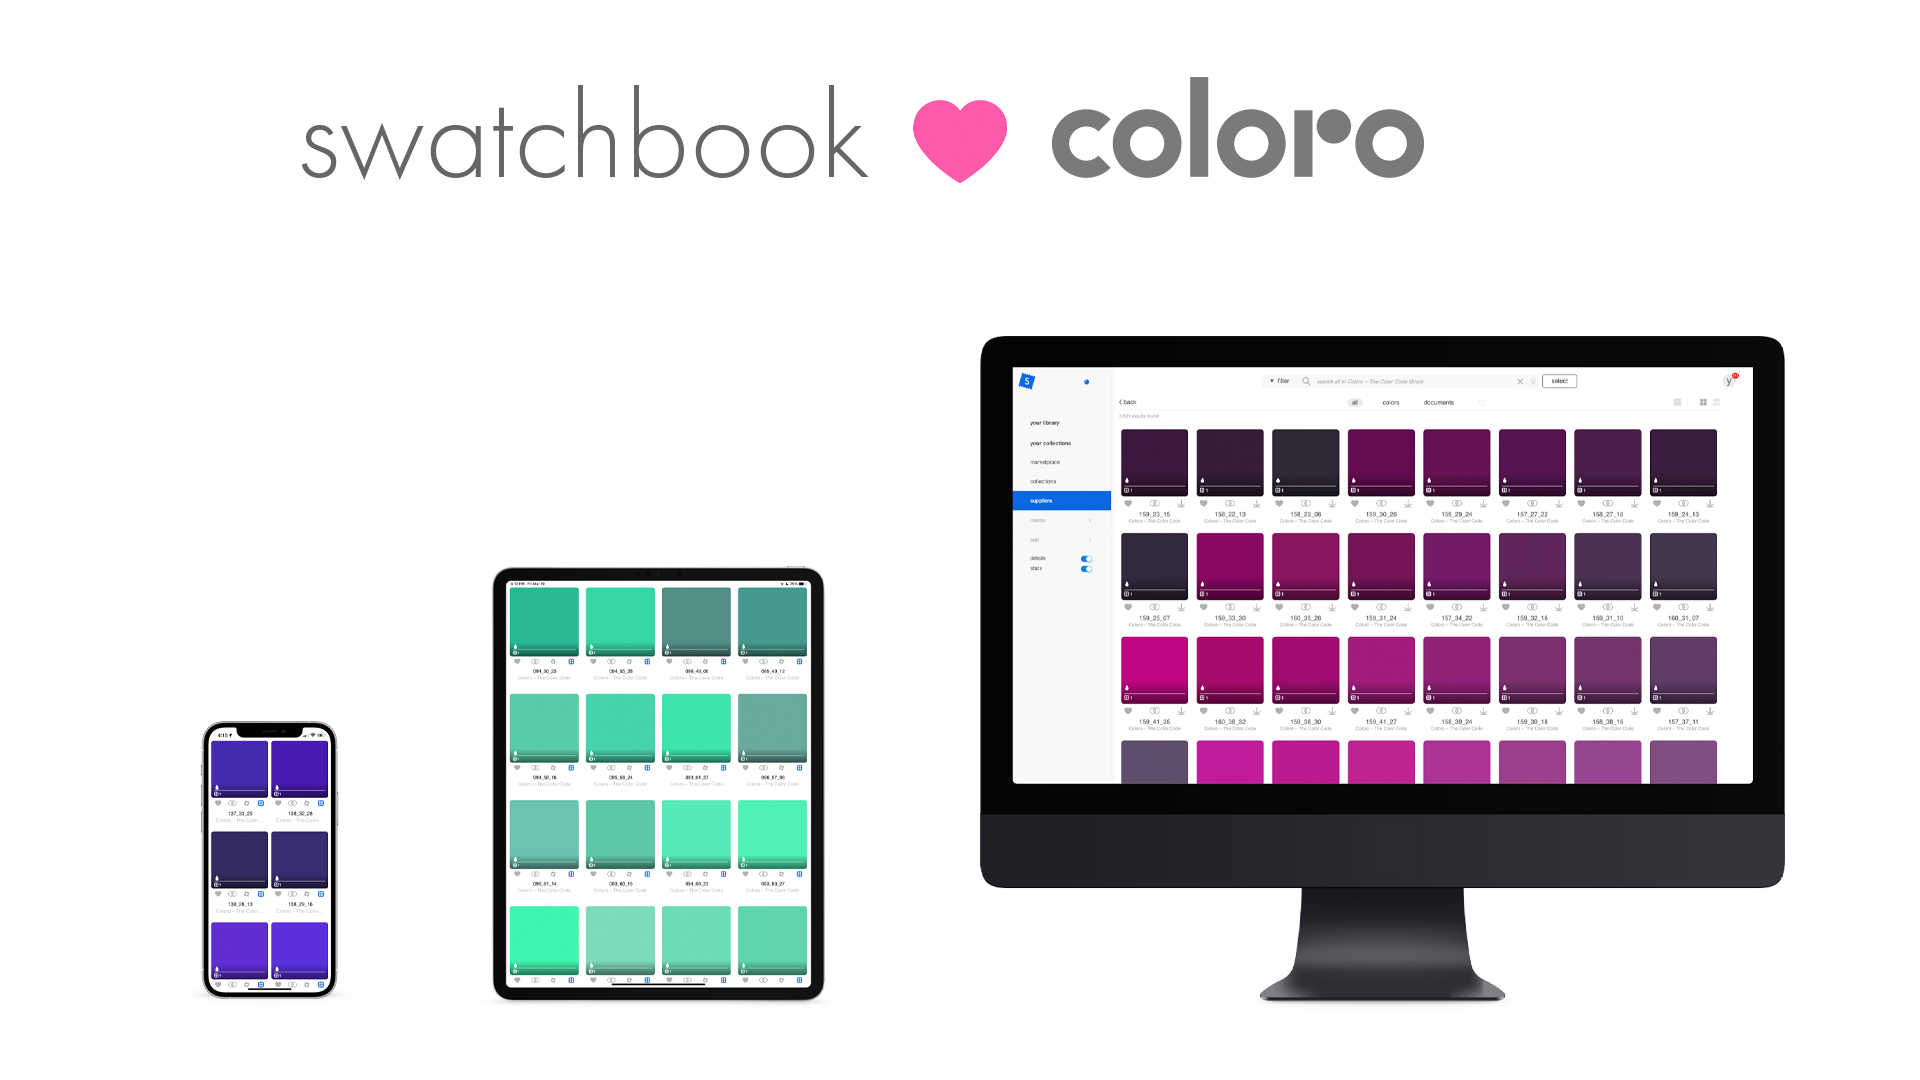 coloro colors insides swatchbook